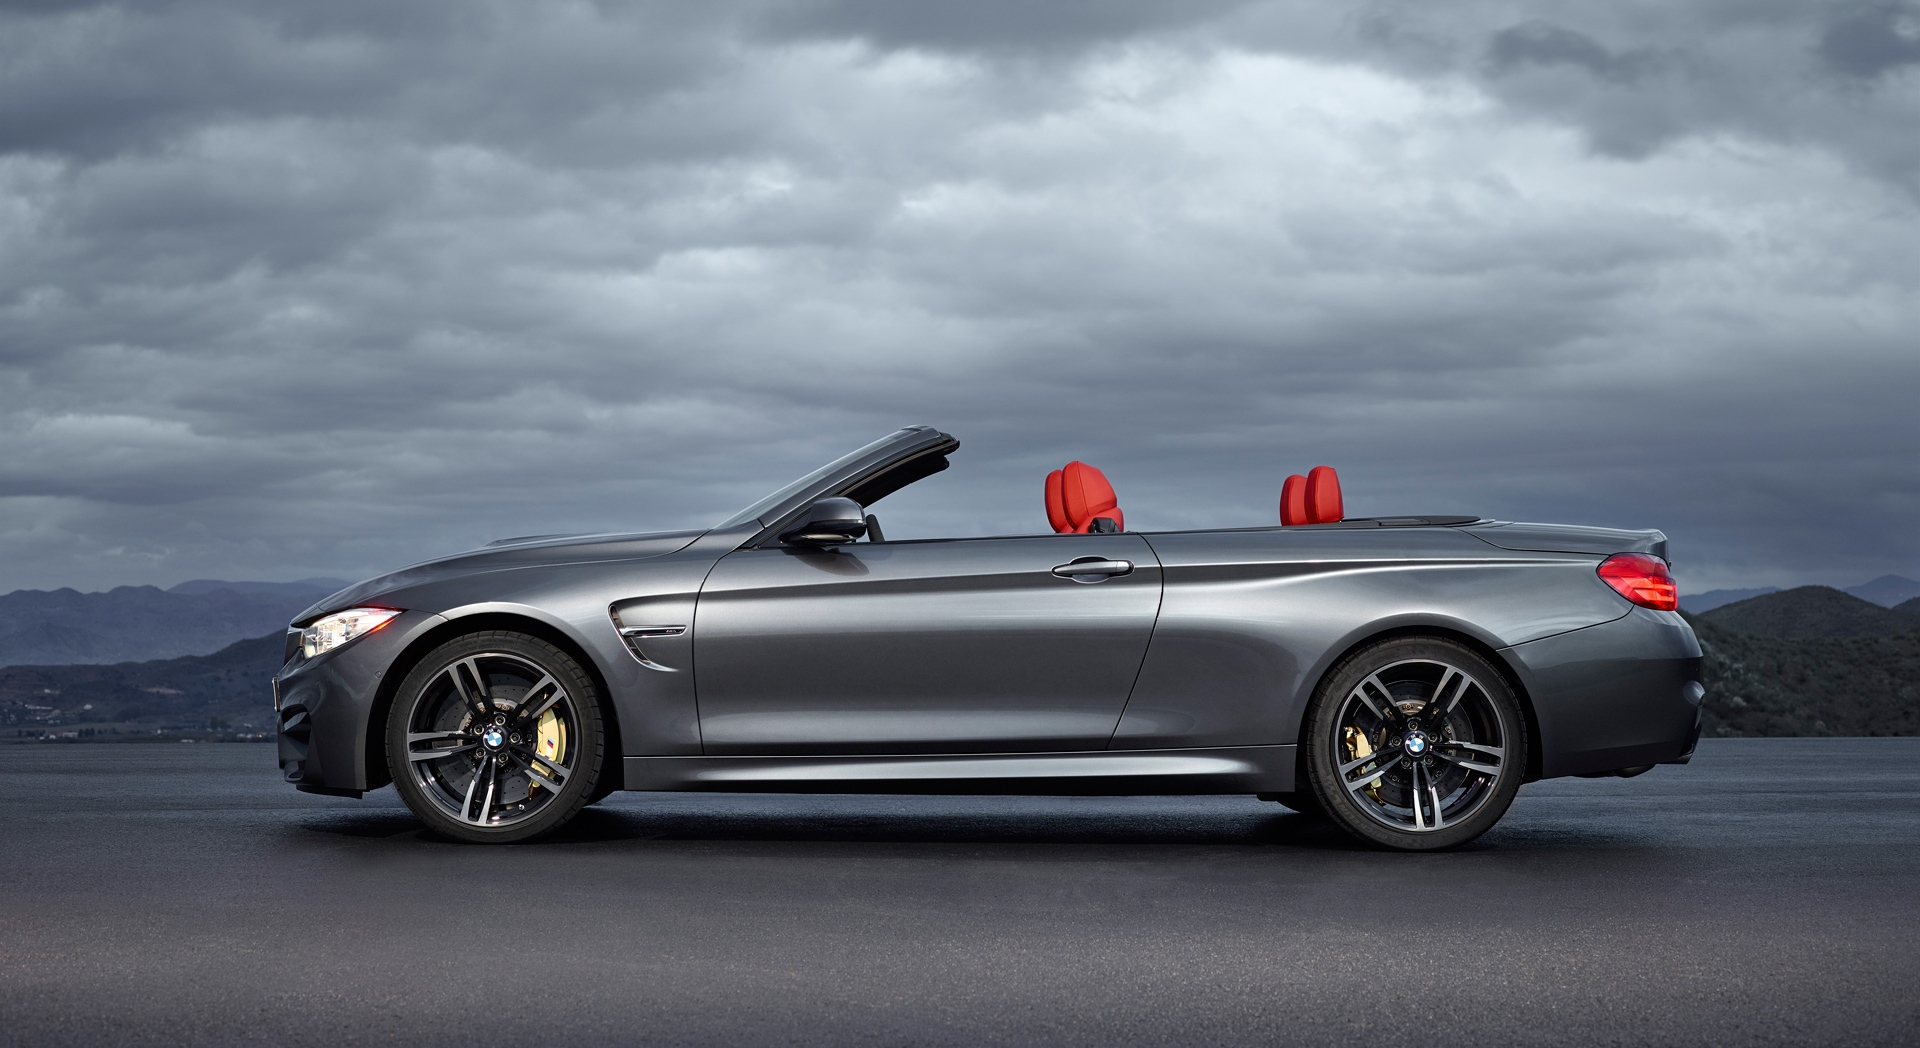 bmw m4 cabrio car hd desktop wallpapers 4k hd. Black Bedroom Furniture Sets. Home Design Ideas